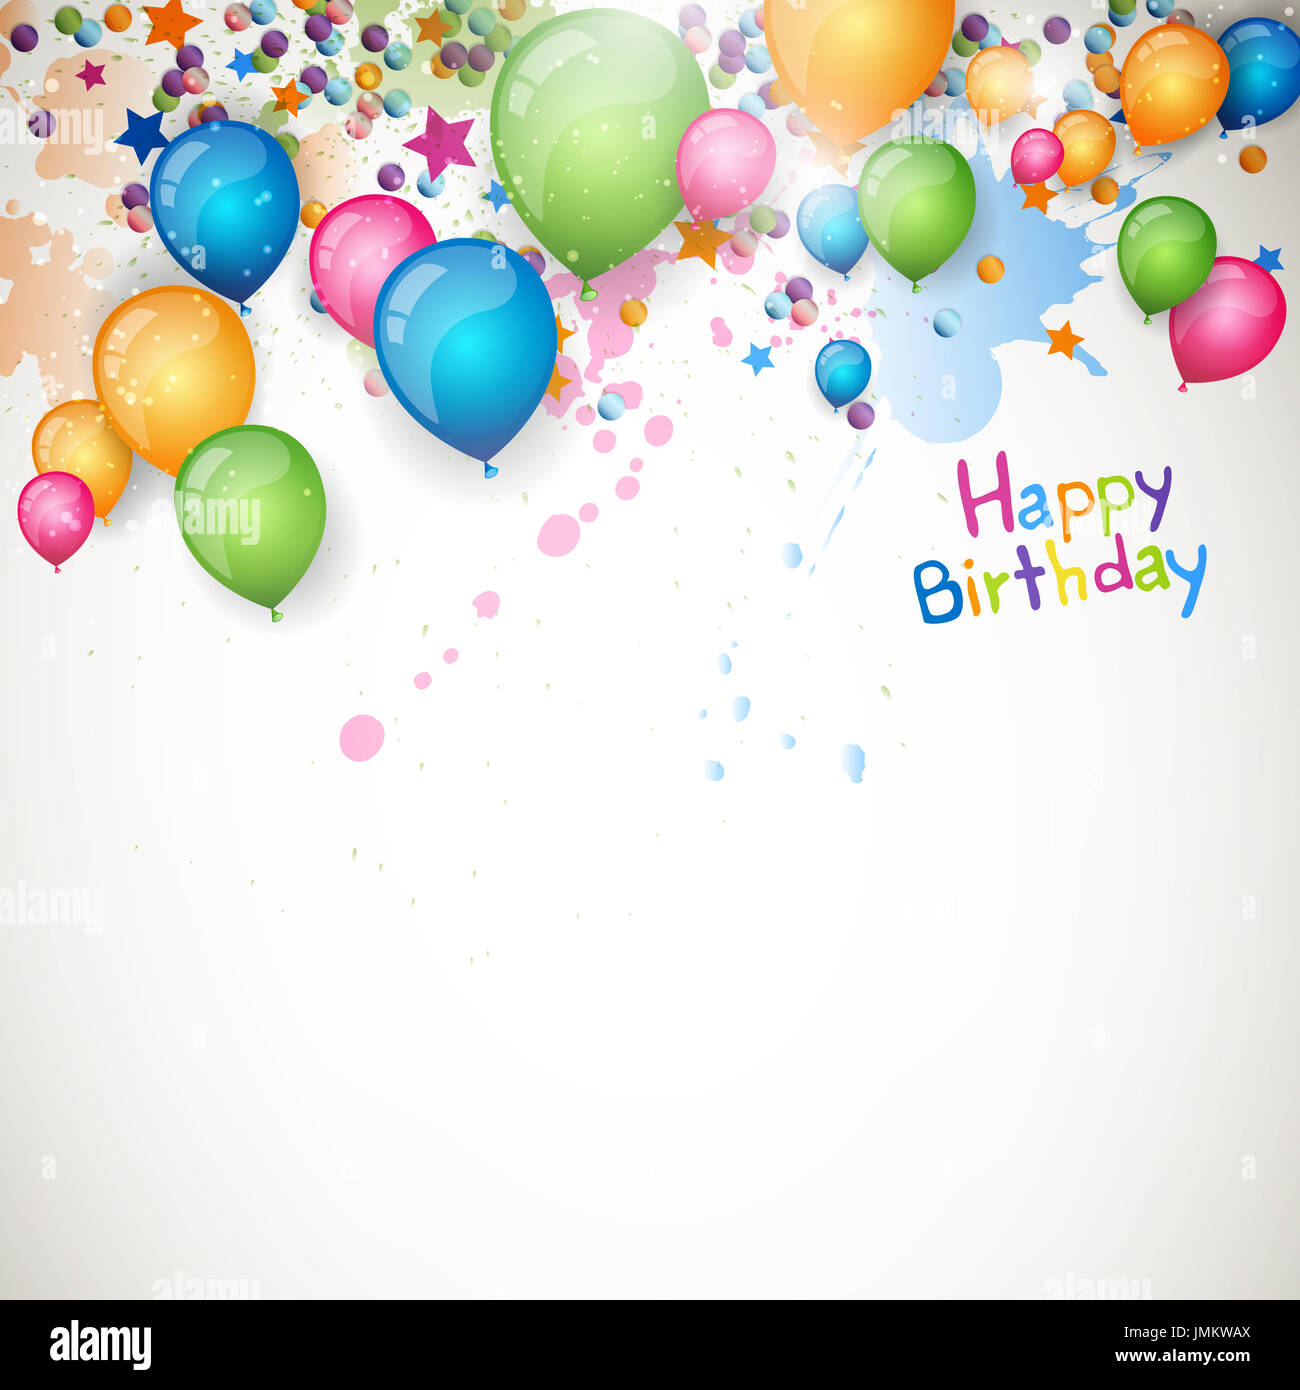 Vector Illustration Of A Happy Birthday Greeting Card Stock Photo